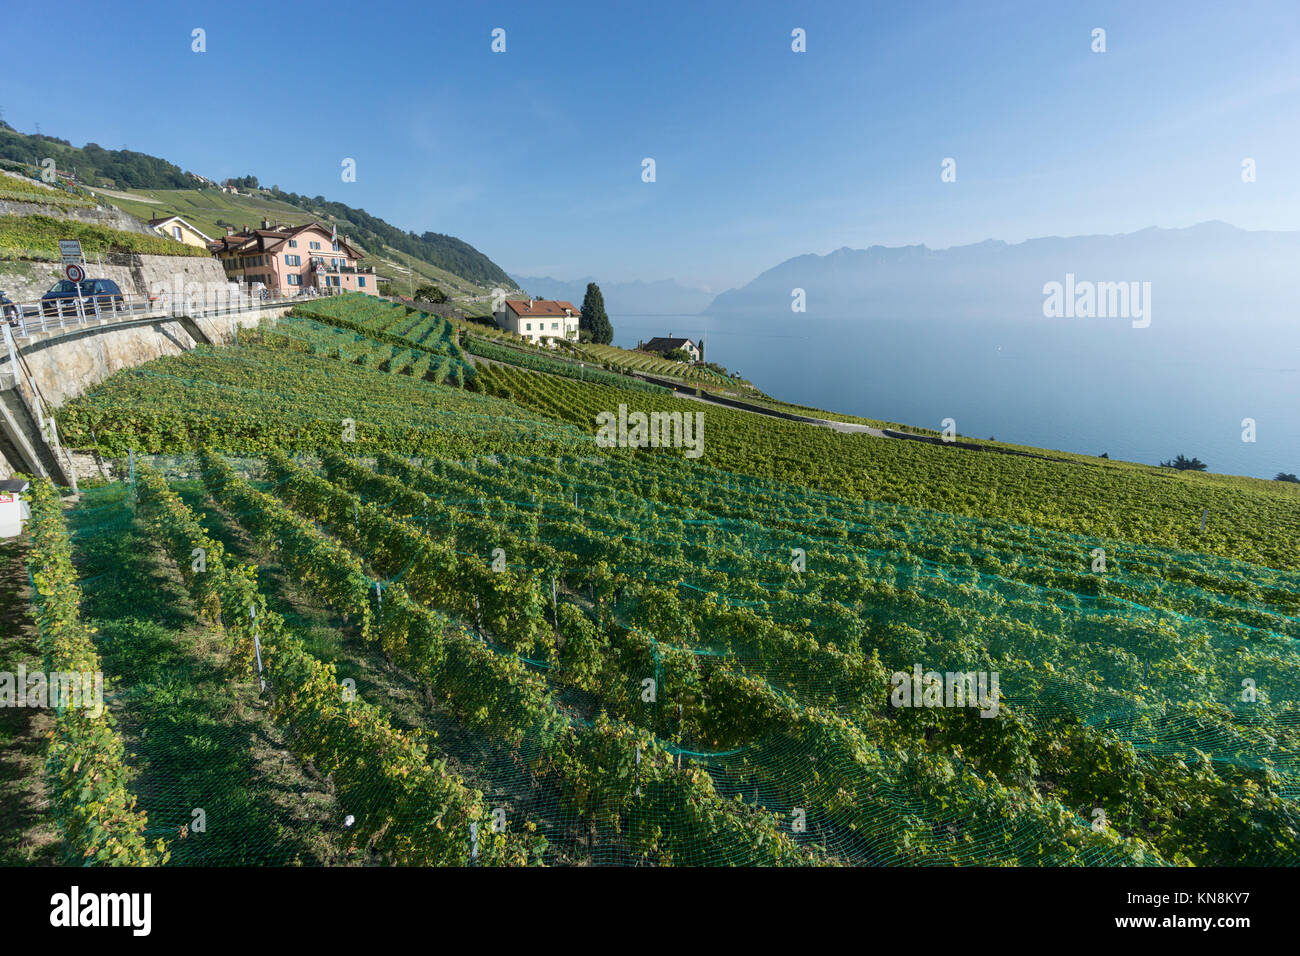 Epesses, Vineyards , Lavaux region, Lake Geneva, Swiss Alps,  Switzerland - Stock Image